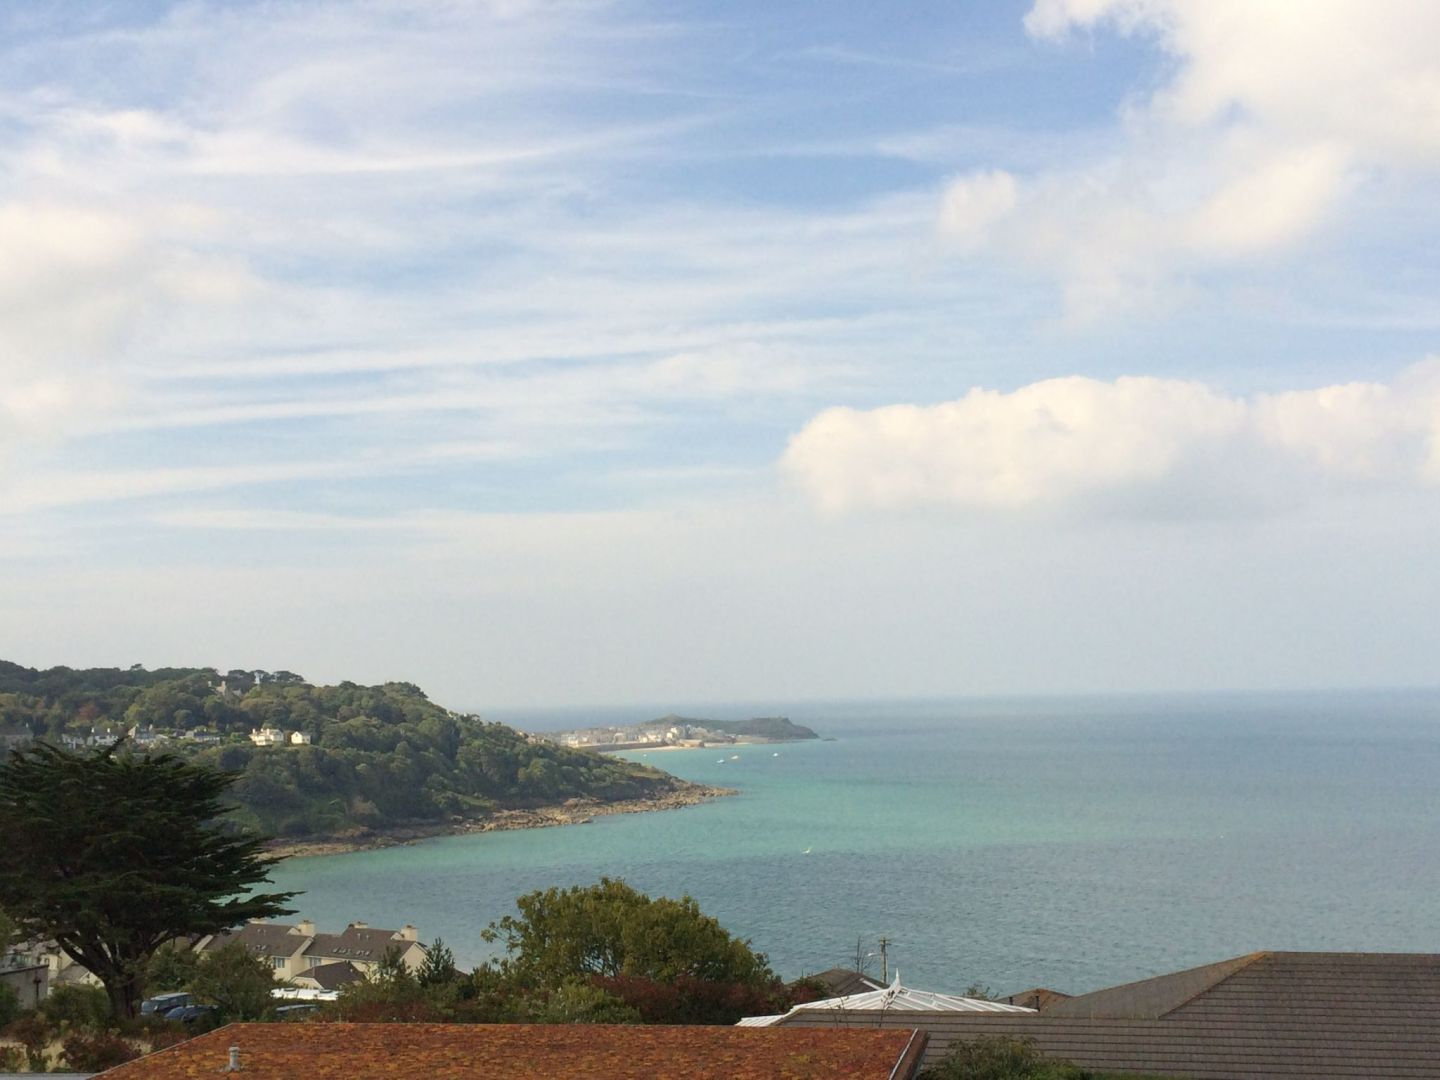 Views across Carbis Bay, Cornwall